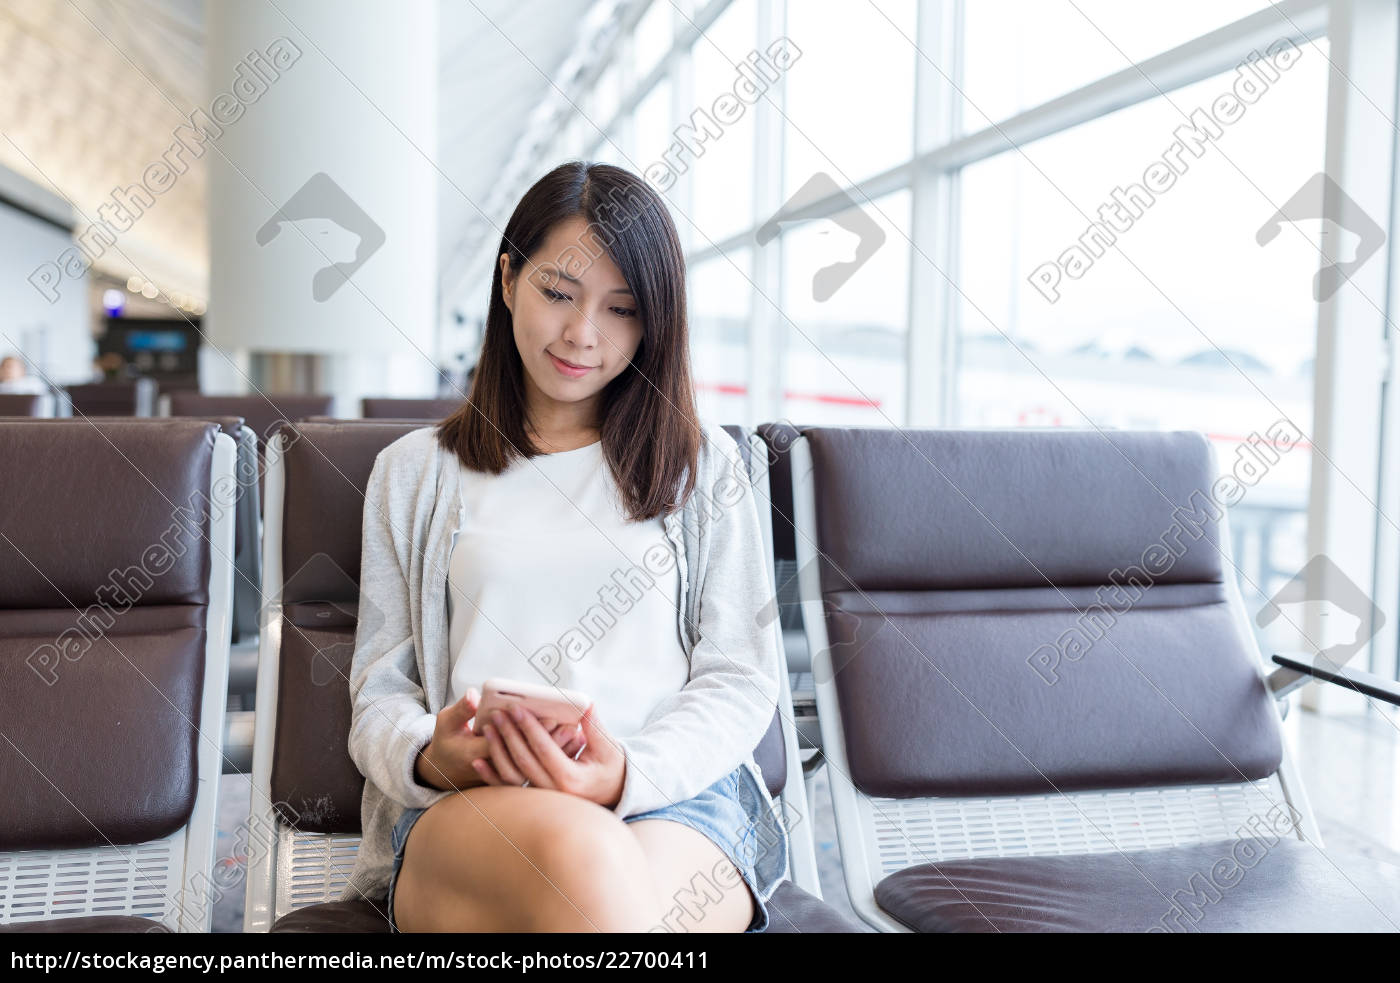 woman, use, of, cellphone, in, airport - 22700411